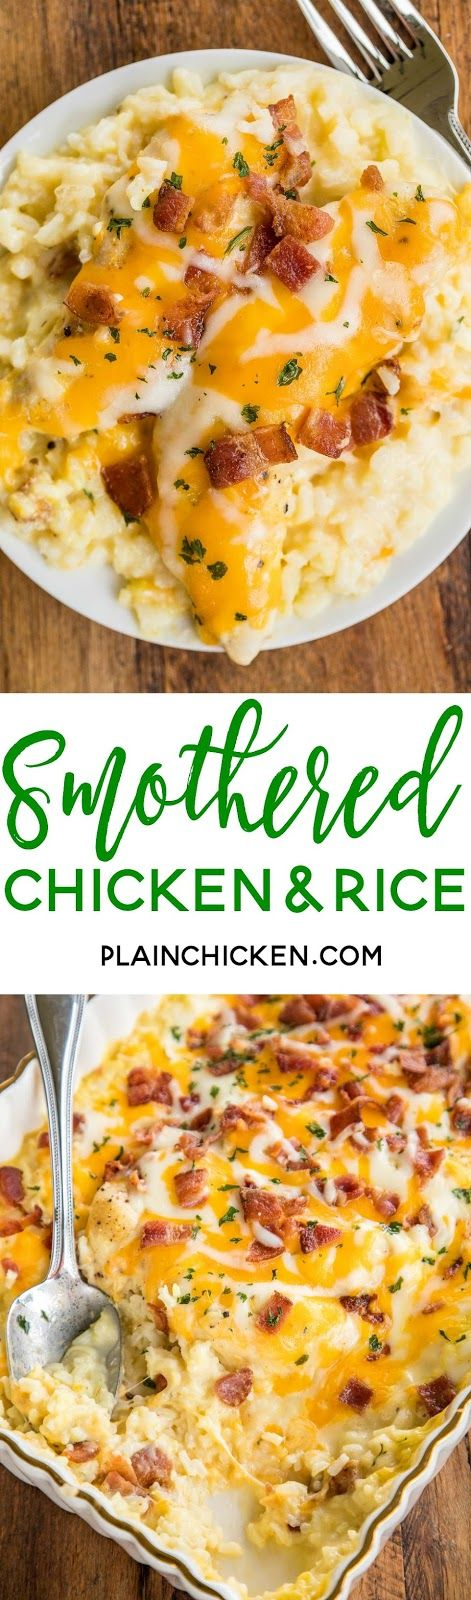 Smothered Chicken and Rice recipe - Chicken and rice baked in cream of chicken soup, milk, cheddar, mozzarella and bacon. Ready to bake in a snap and on the table in 30 minutes.